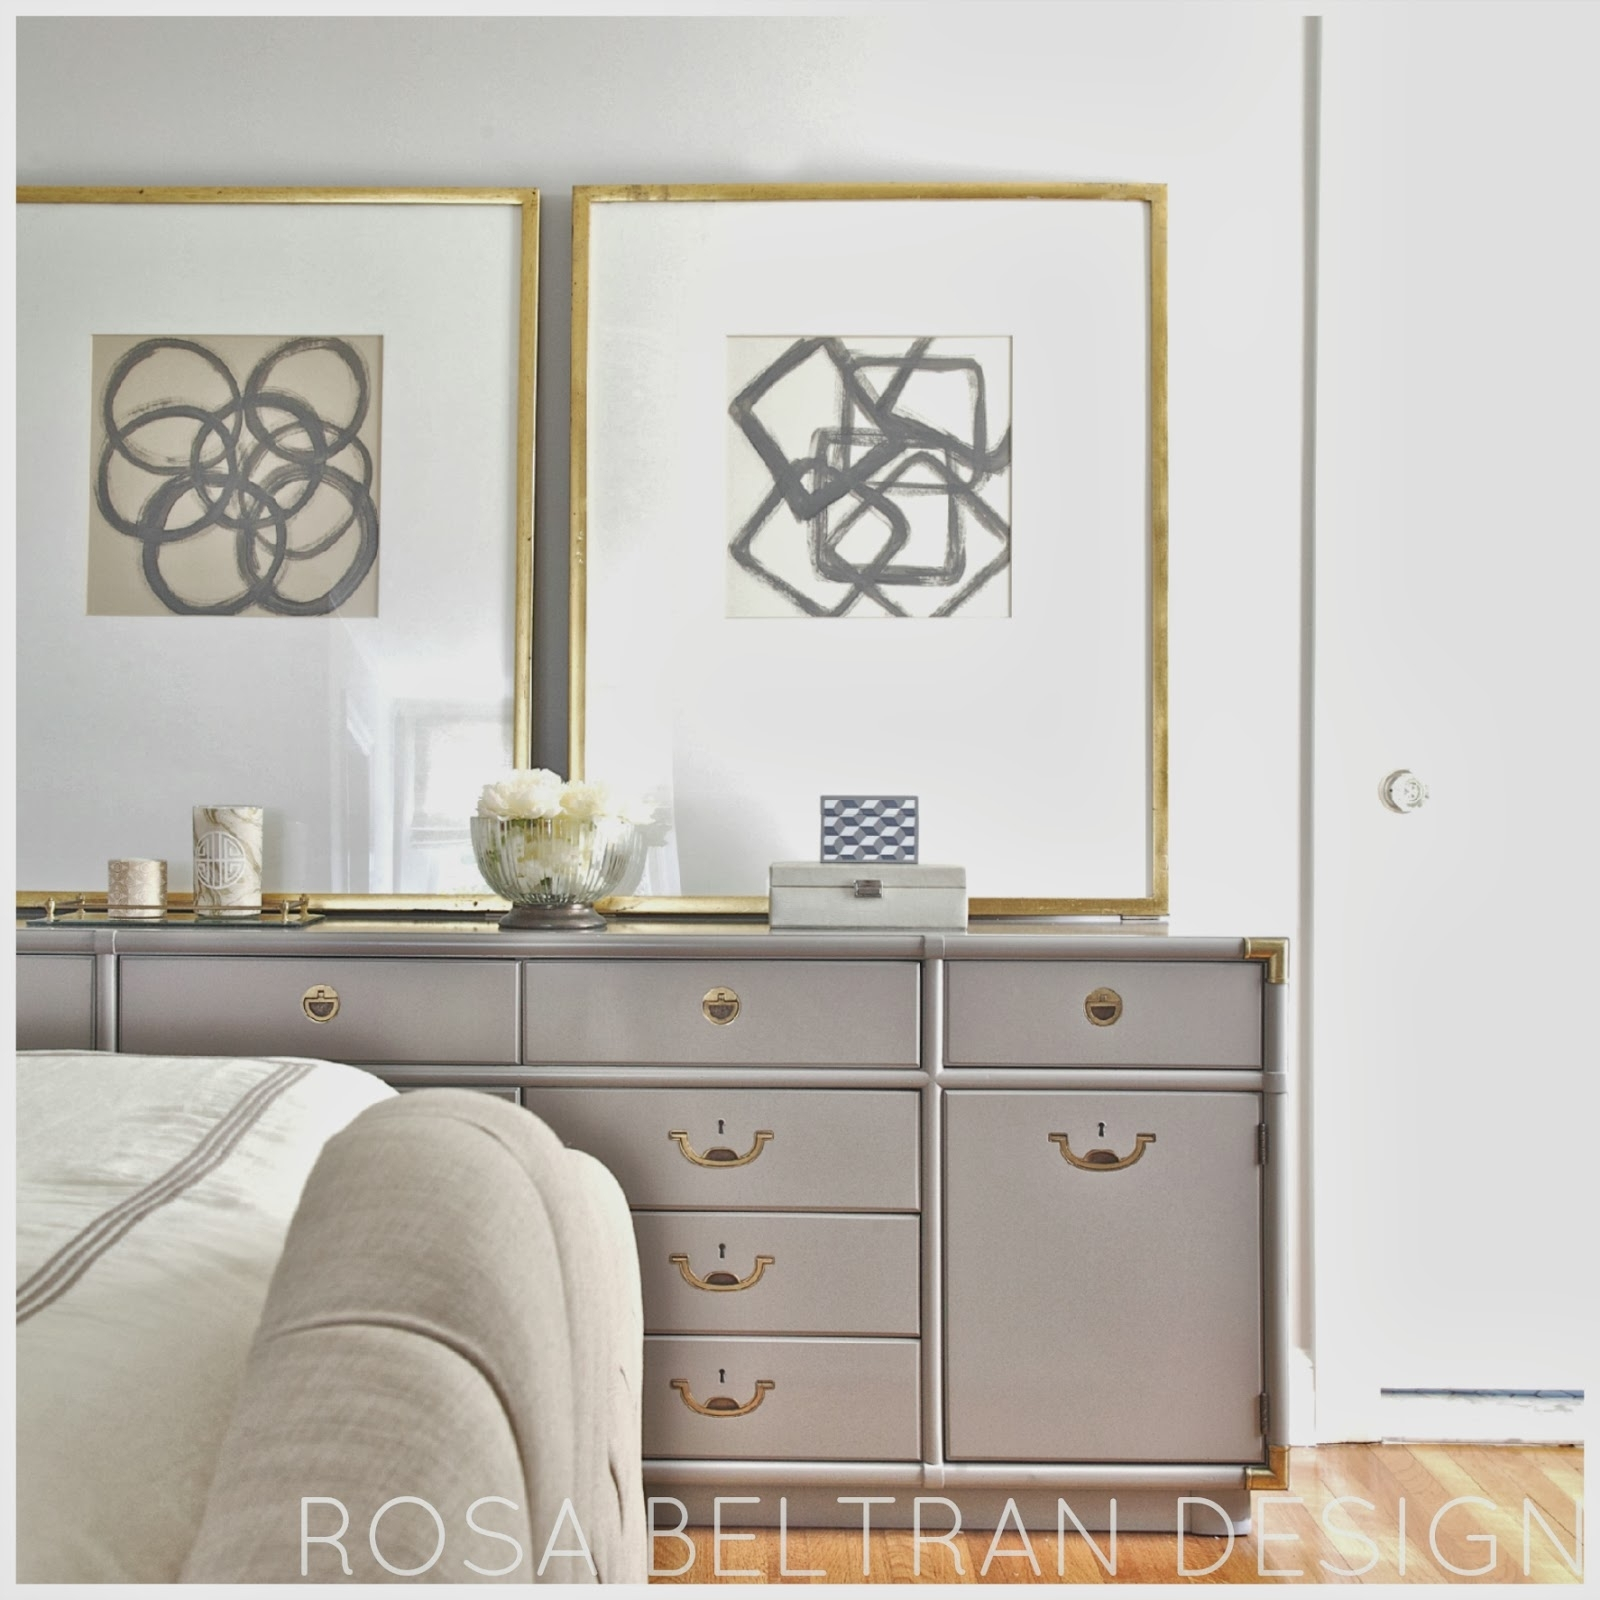 Rosa Beltran Design: Diy Wall Art Series: Modern Abstracts With 2017 Diy Modern Abstract Wall Art (Gallery 10 of 20)